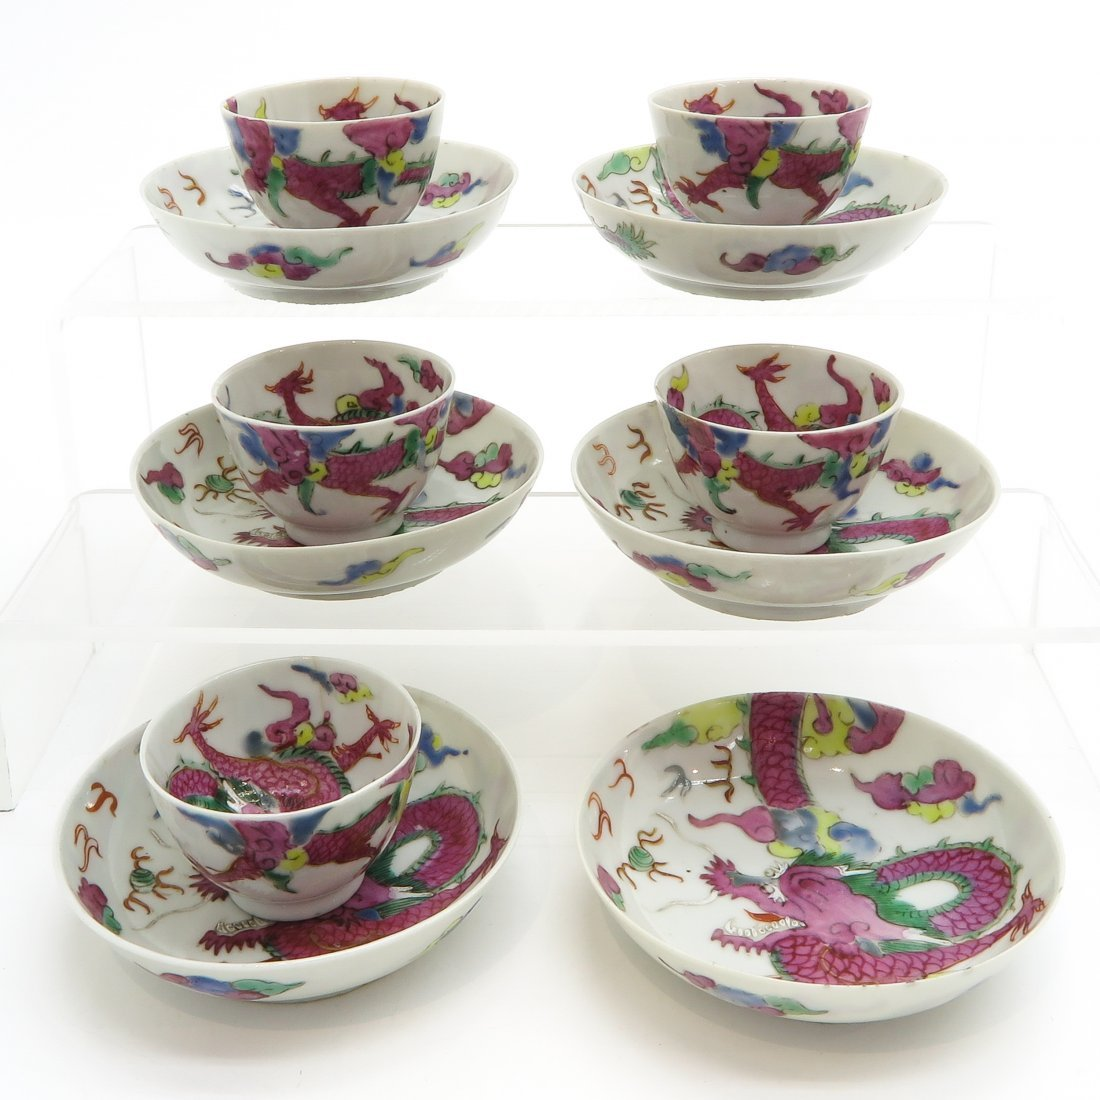 18th / 19th Century China Porcelain Cups and Saucers